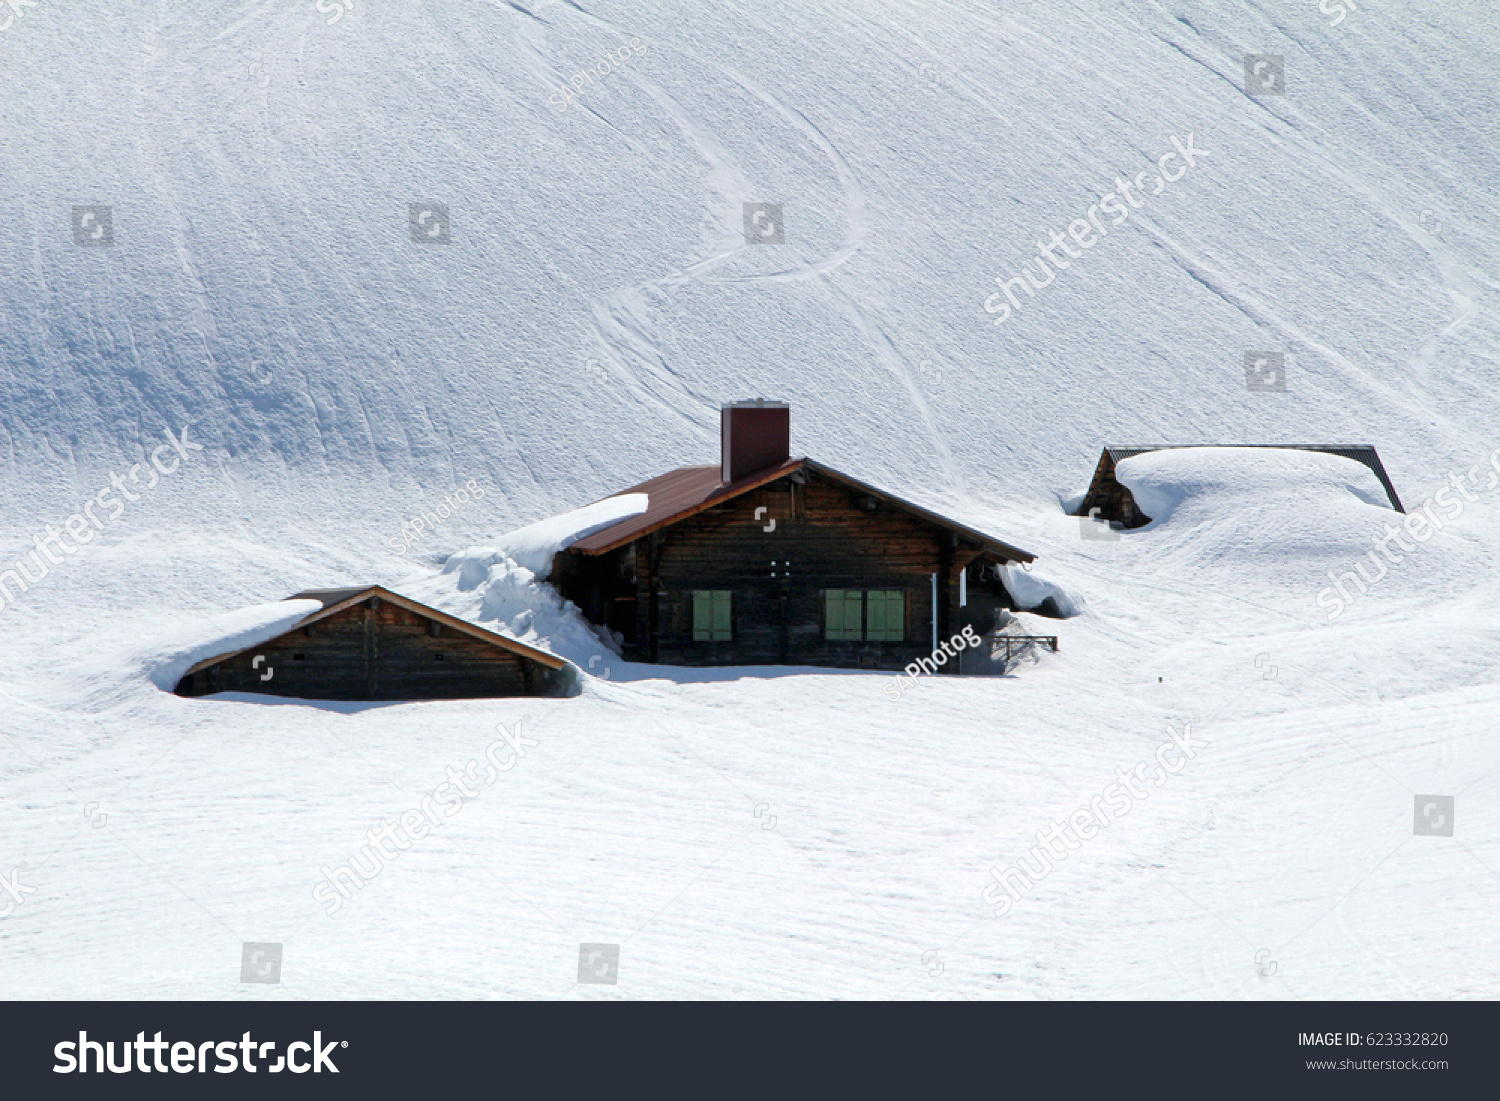 Wooden Chalets And Cabins Buried Under Snow On A Ski Resort In The Swiss Alps